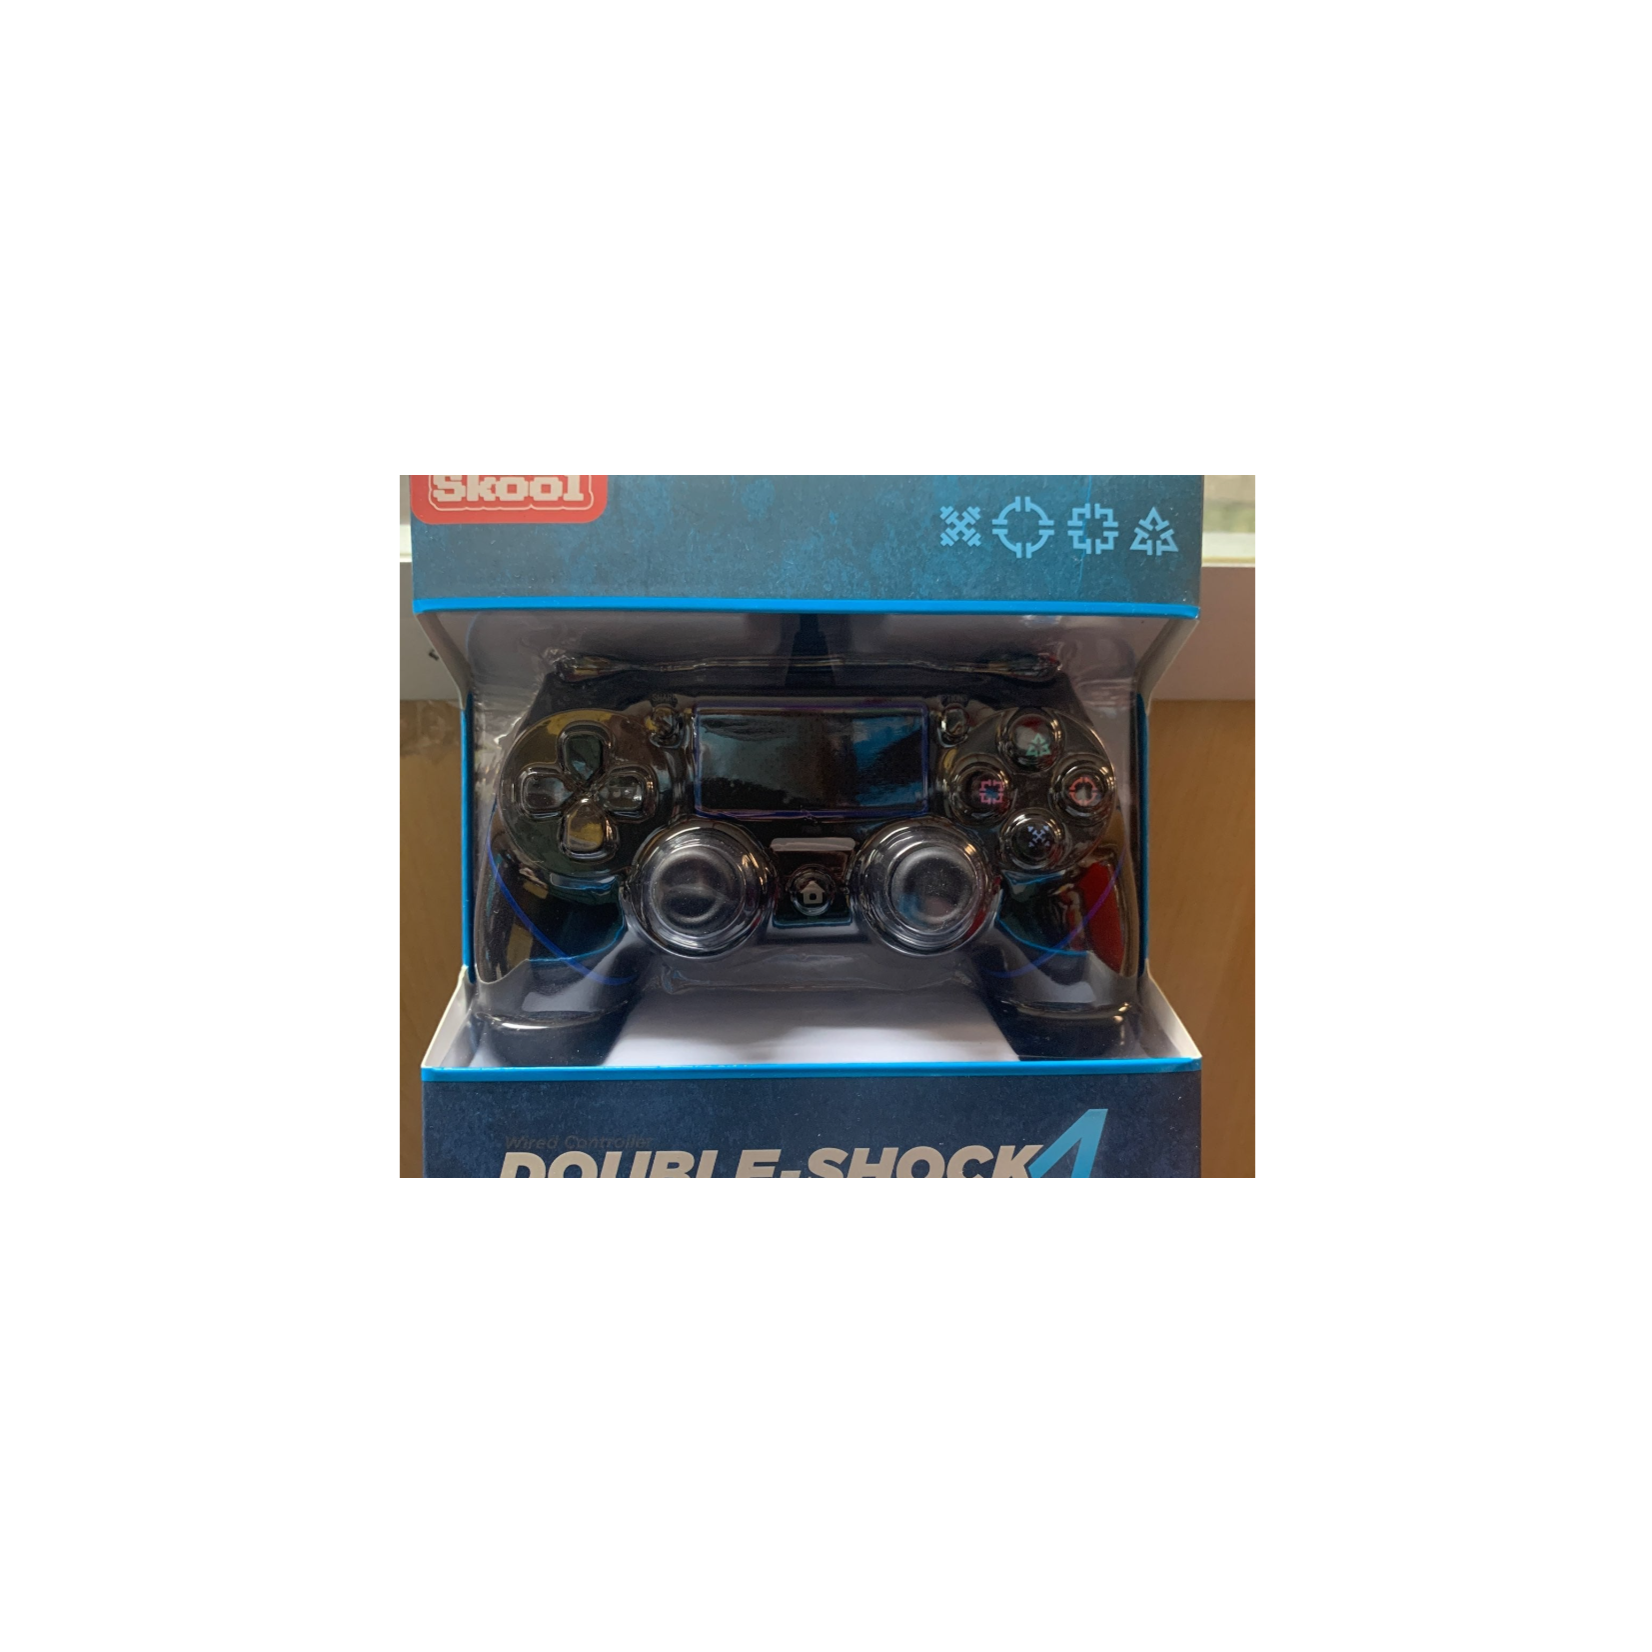 DOUBLE-SHOCK 4 WIRED CONTROLLER FOR PS4